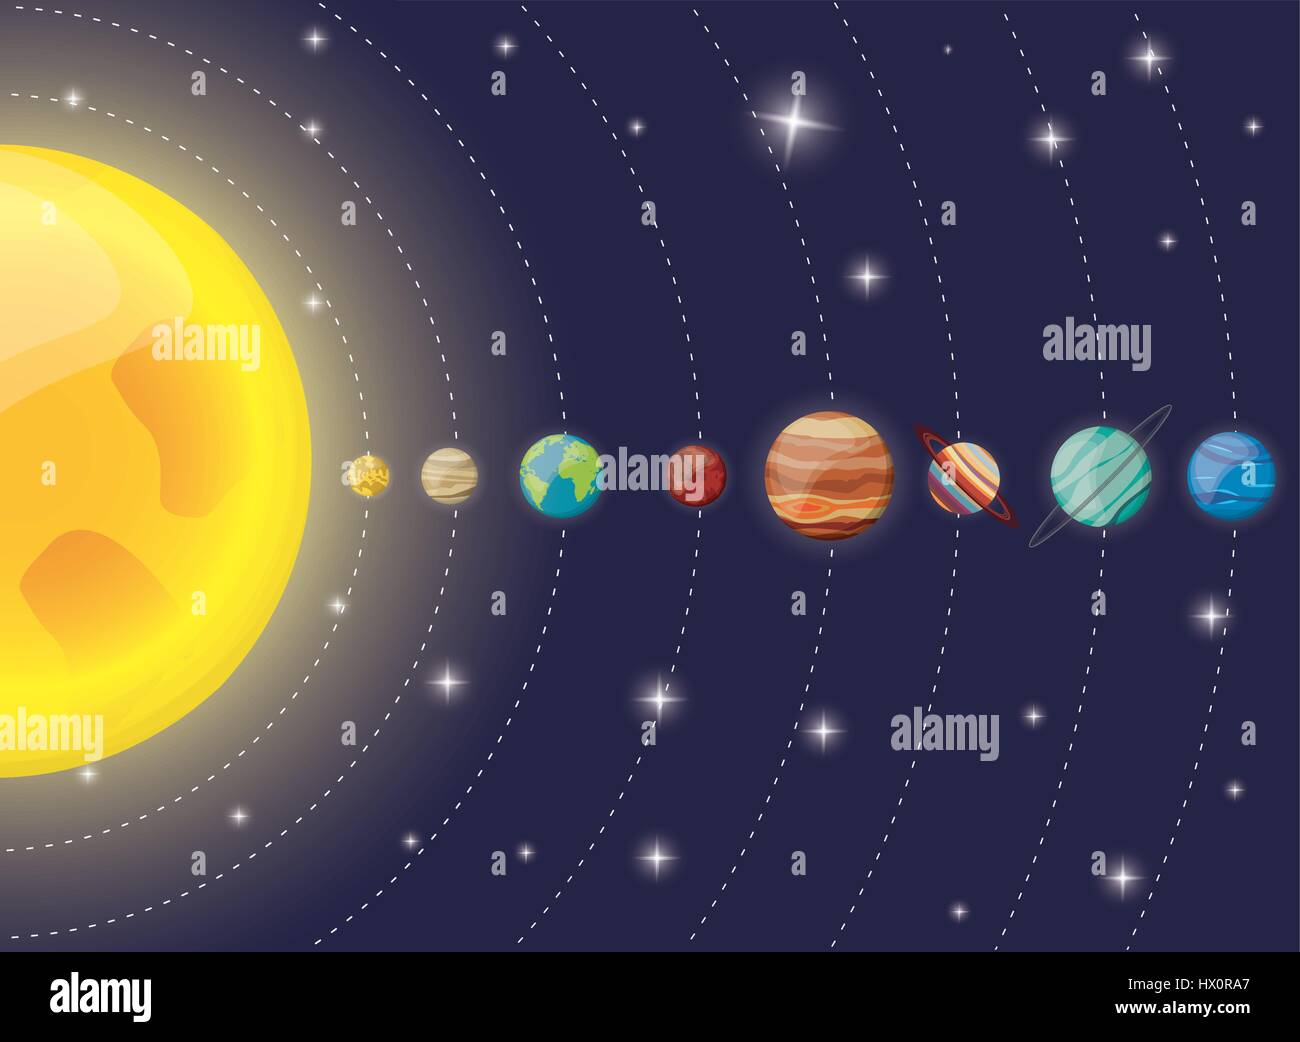 solar system diagram stock photos solar system diagram stock rh alamy com diagram of solar system to scale diagram of solar system orbits